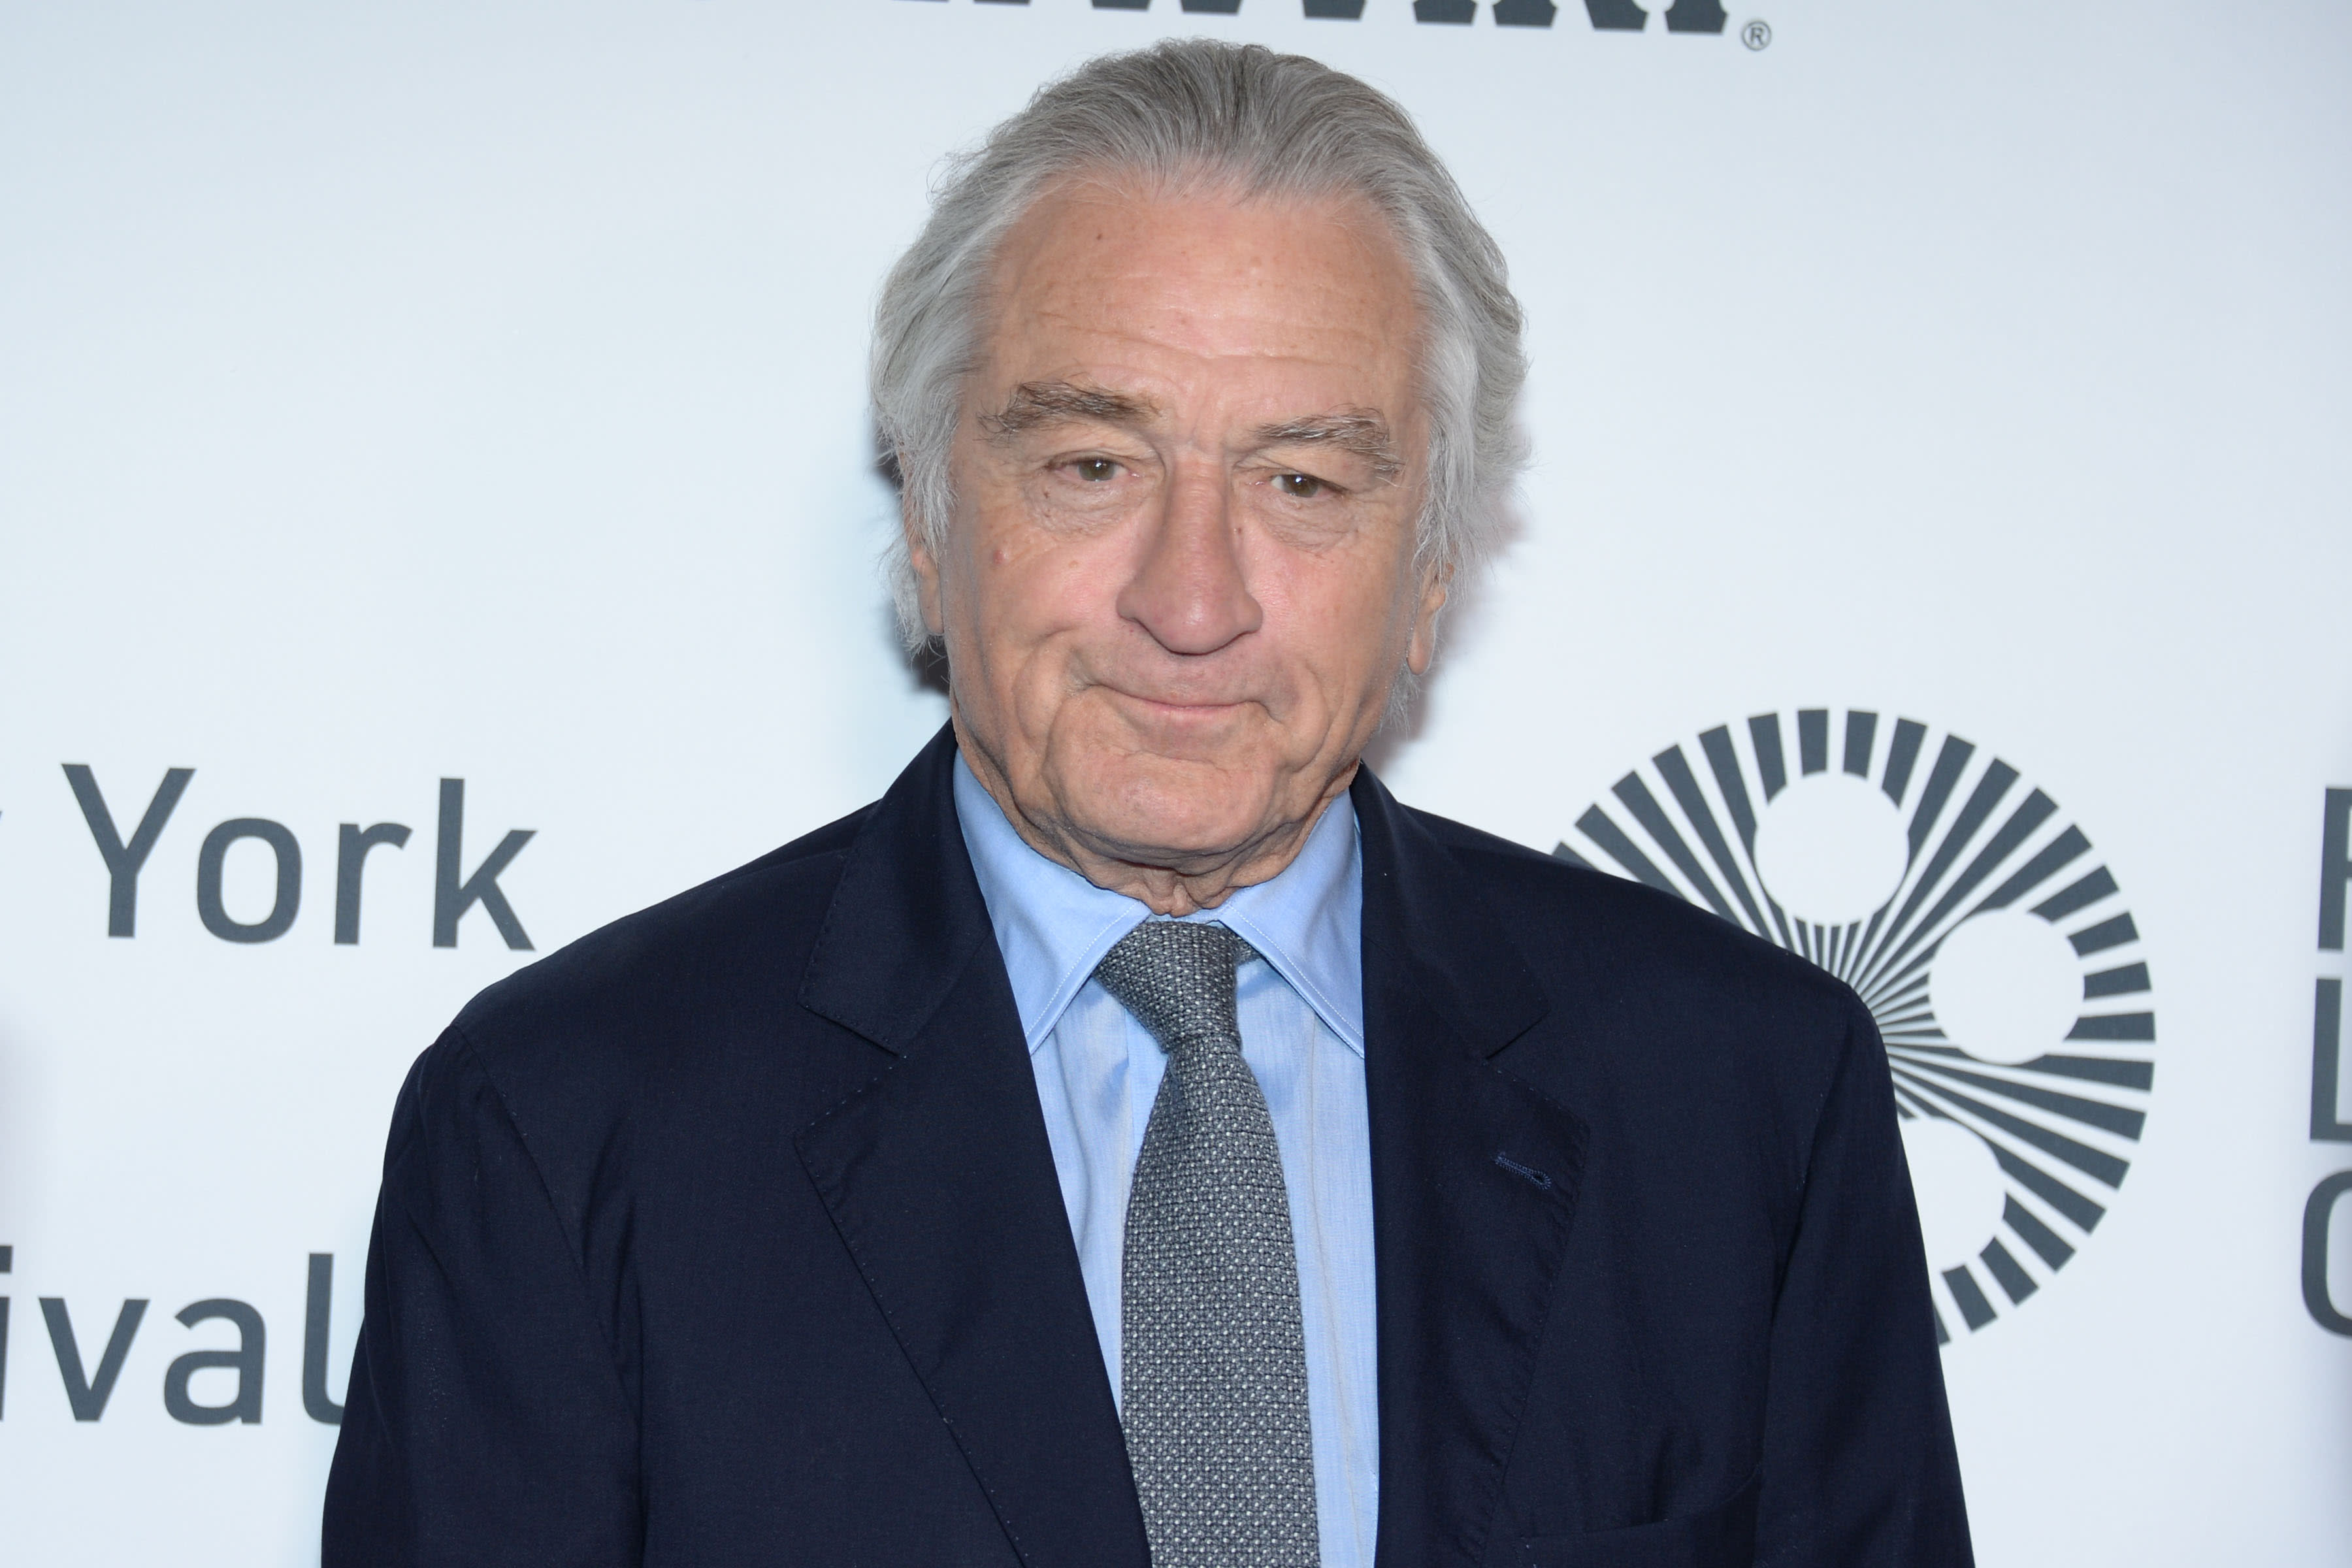 'The Irishman' star Robert De Niro accused of 'abusive and sexist' comments in gender discrimination lawsuit by former assistant